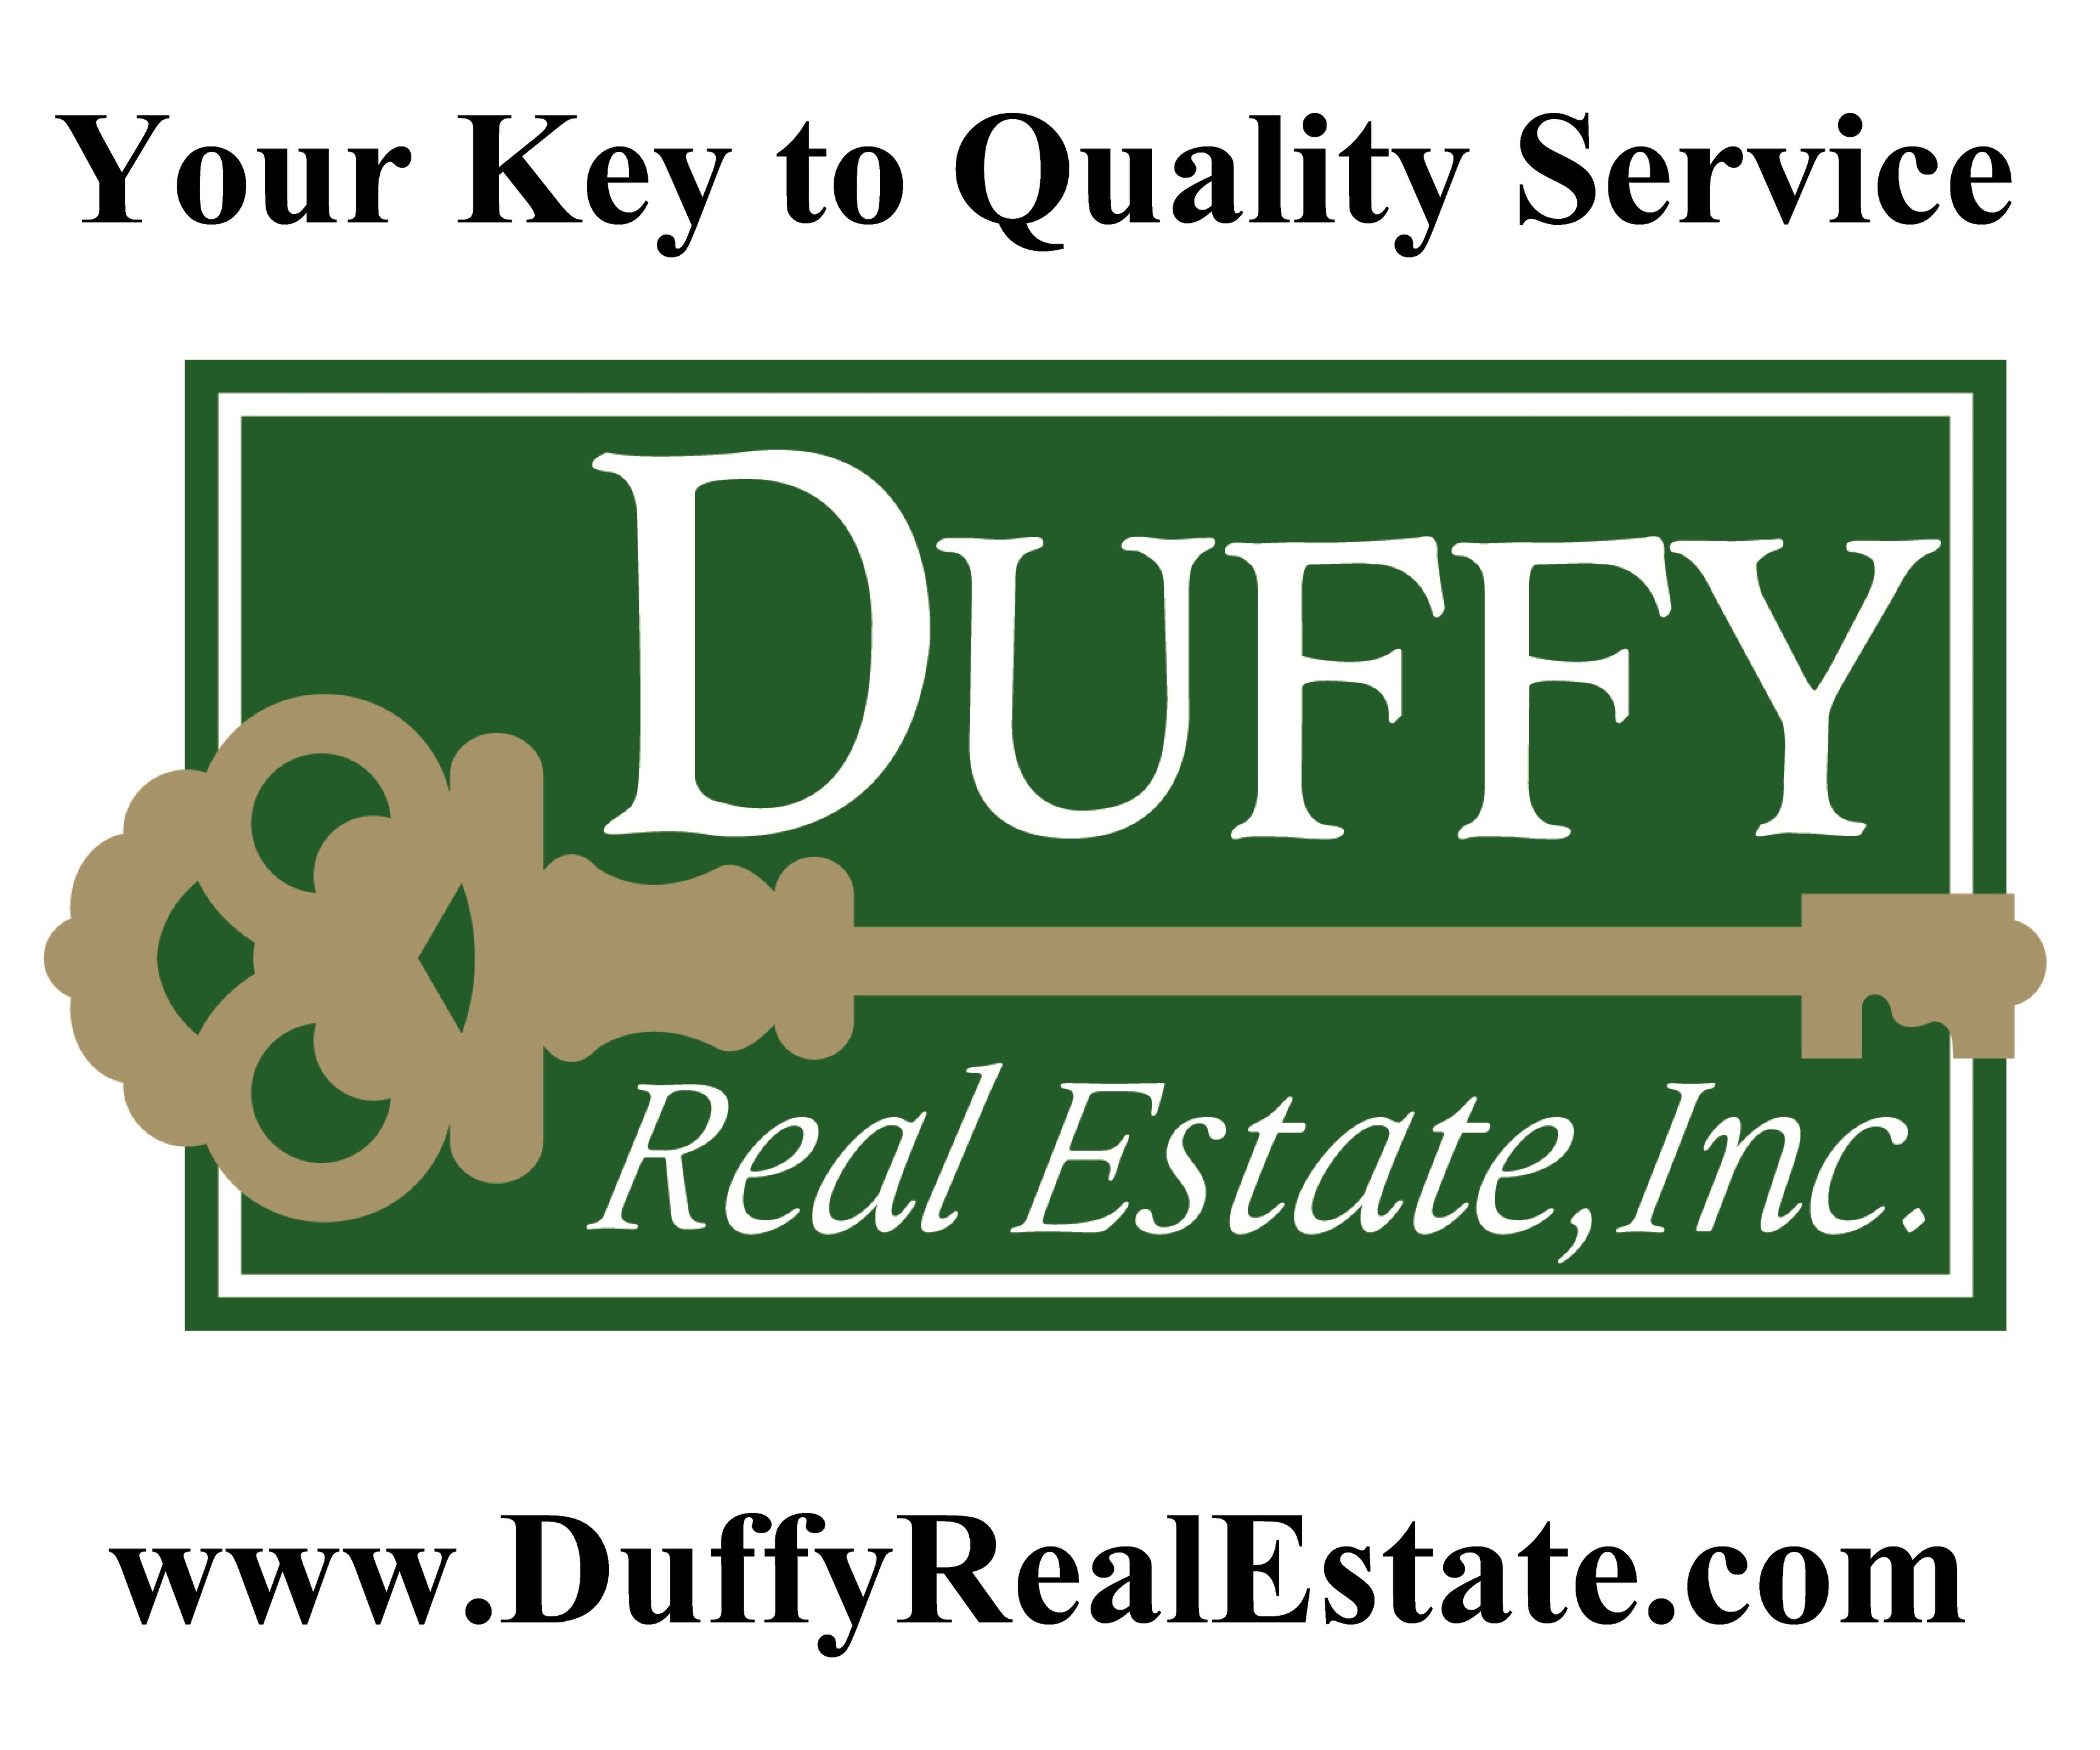 Duffy_real_estate